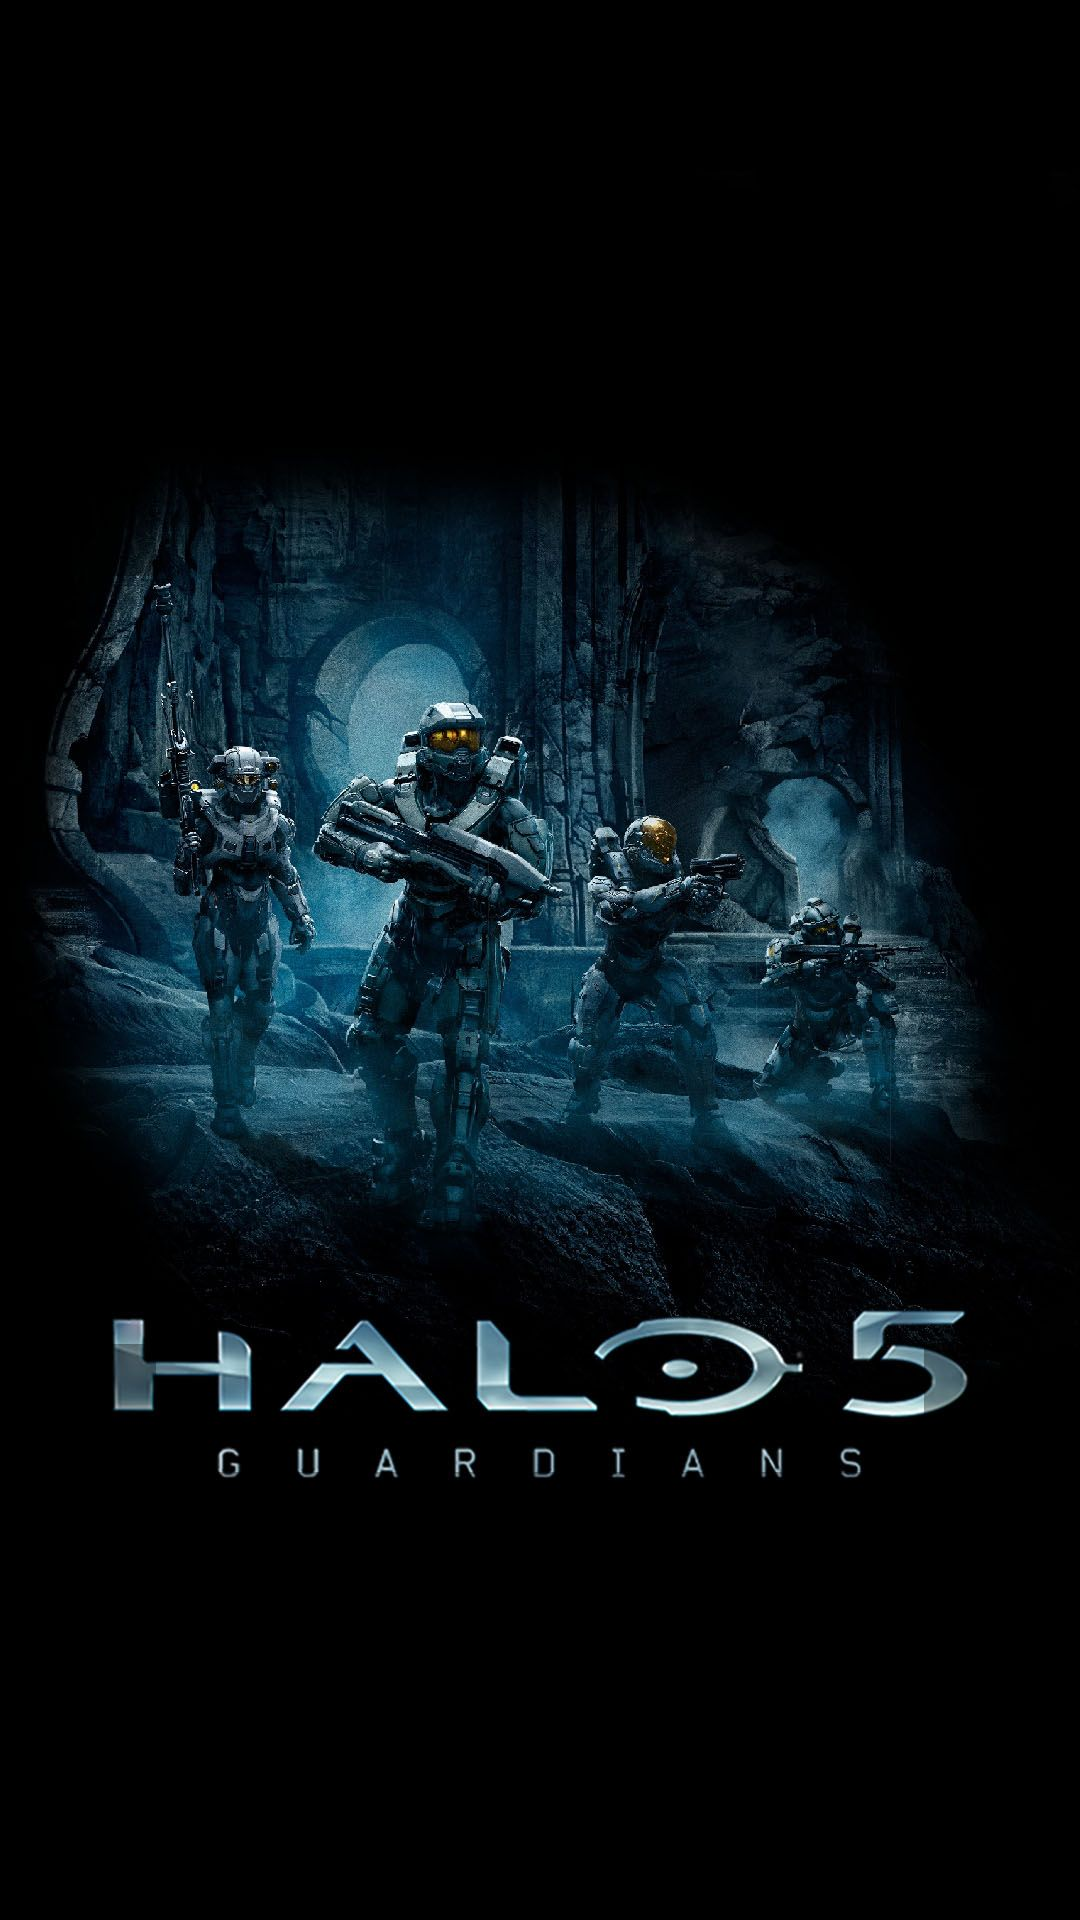 halo 5 guardians blue team windows phone android wallpapers